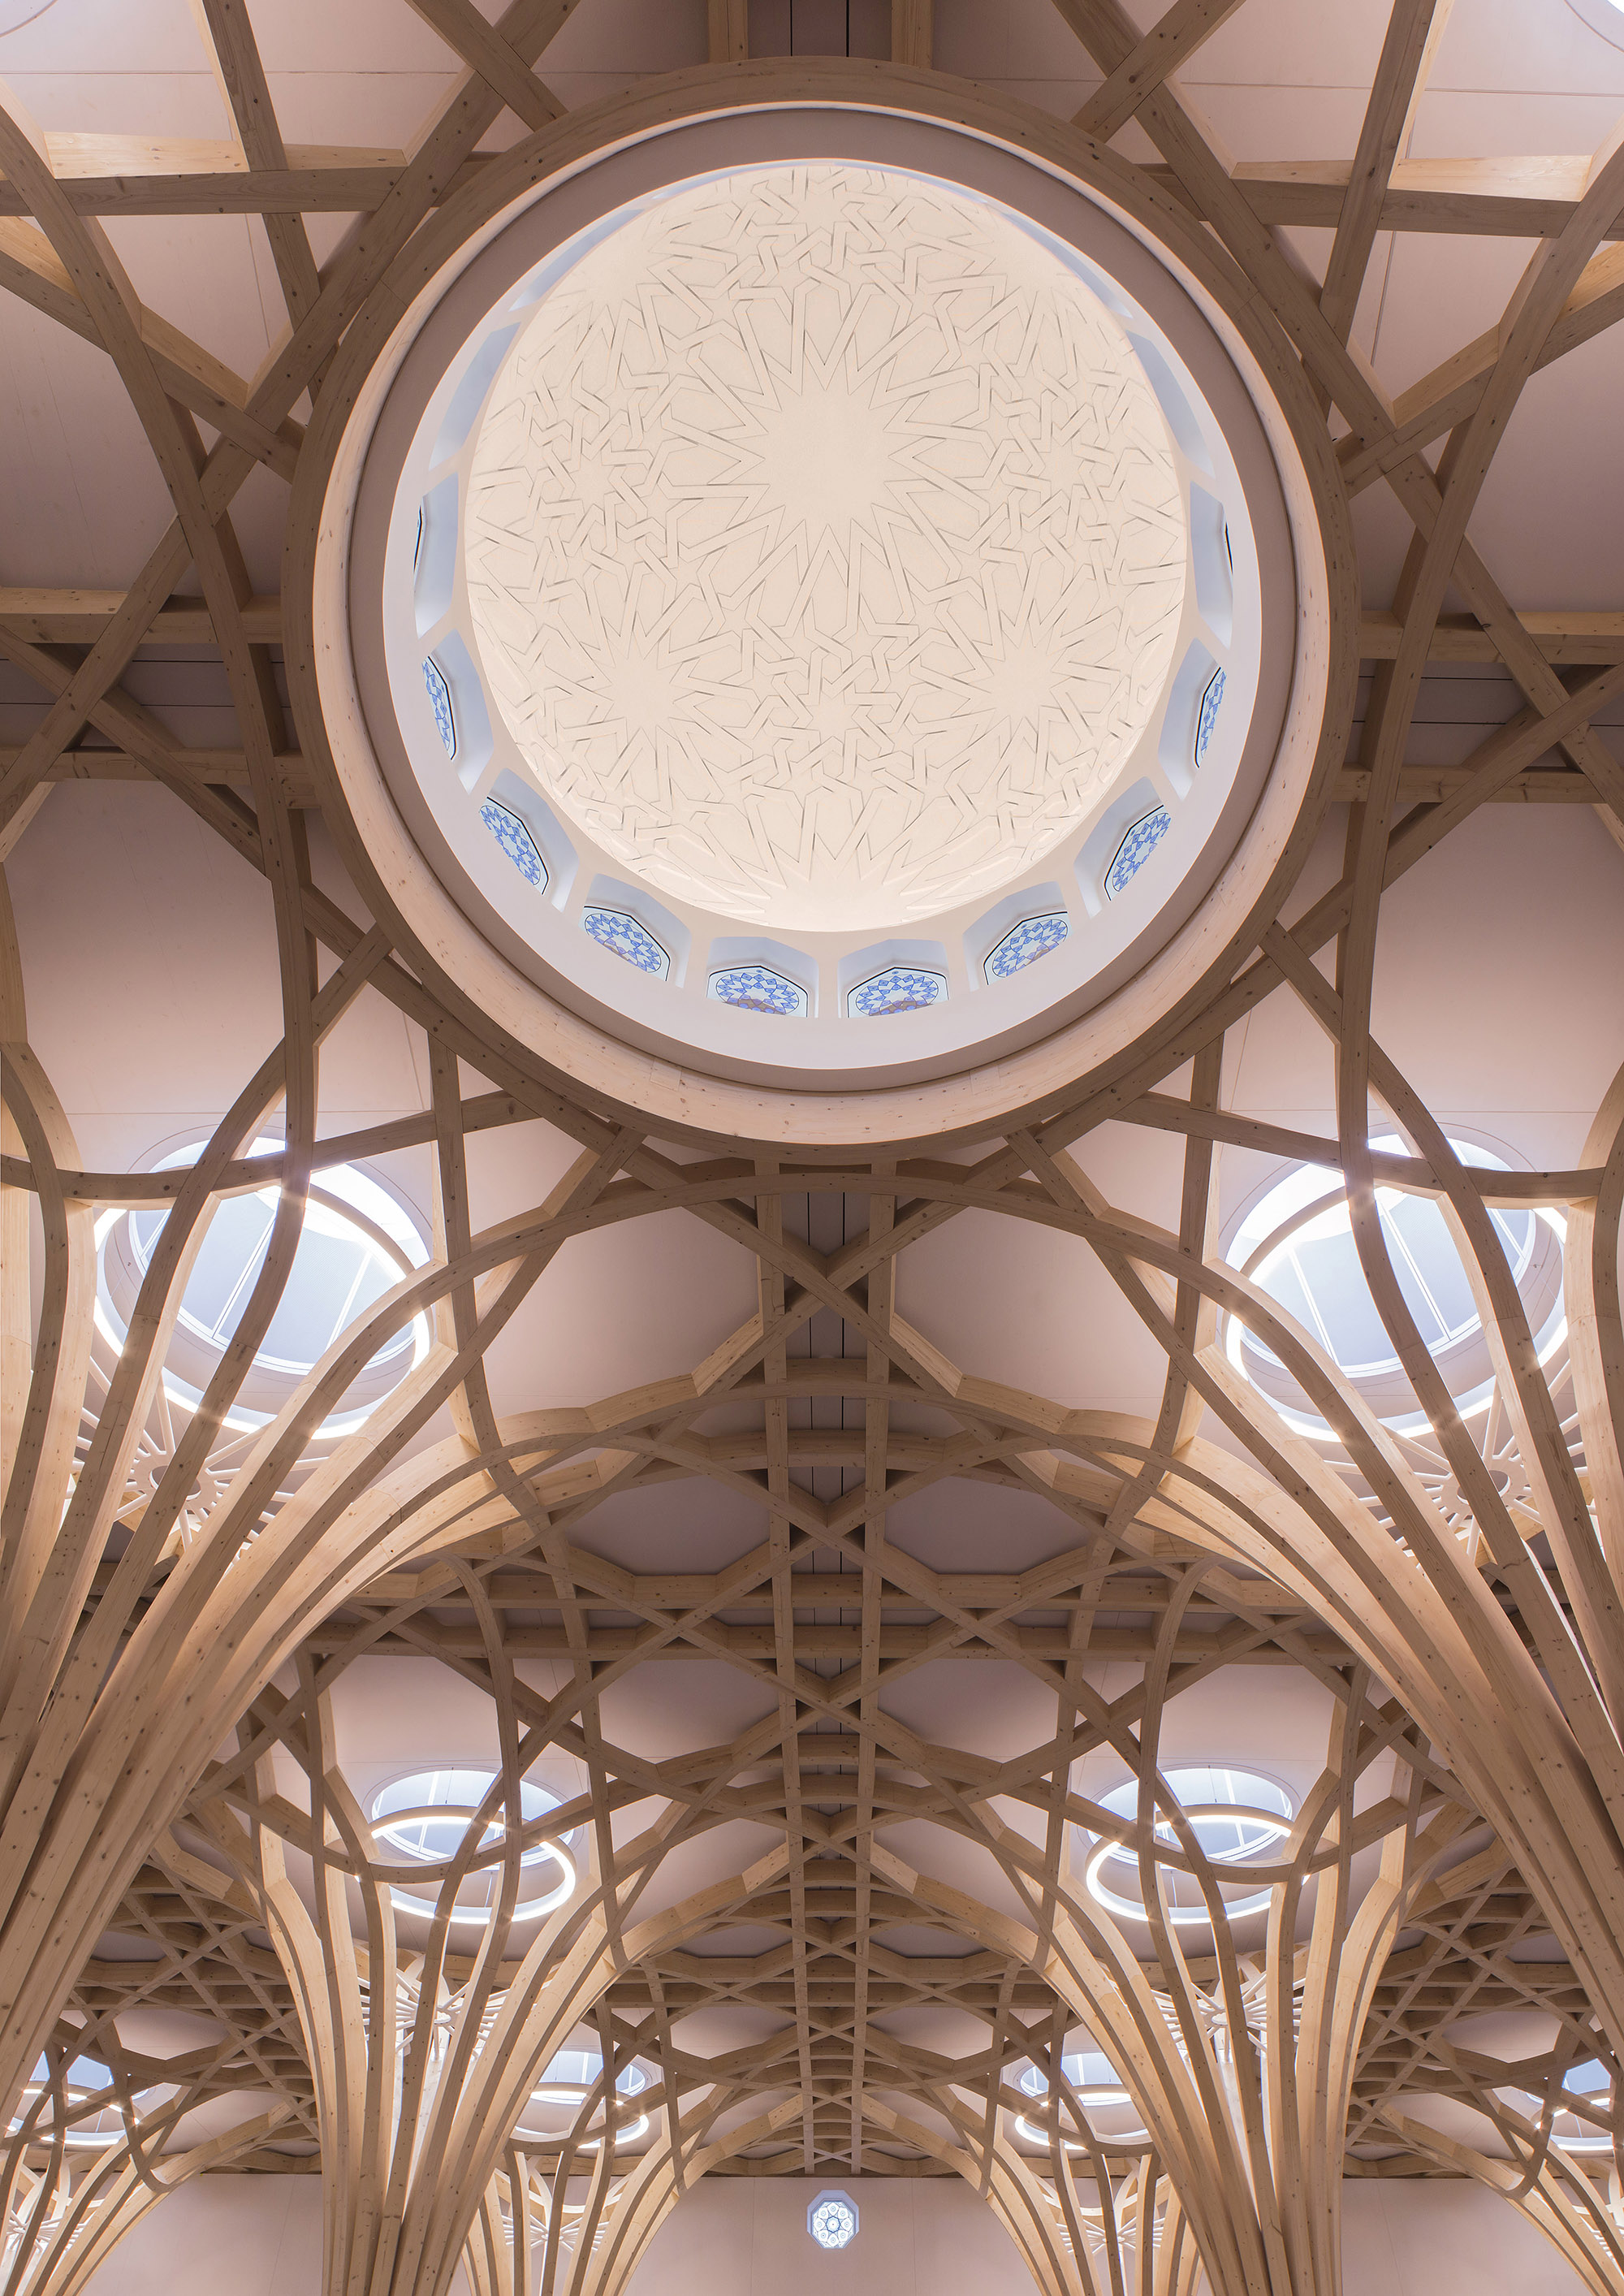 Dome from the prayer hall. The Cambridge Mosque by Marks Barfield Architects